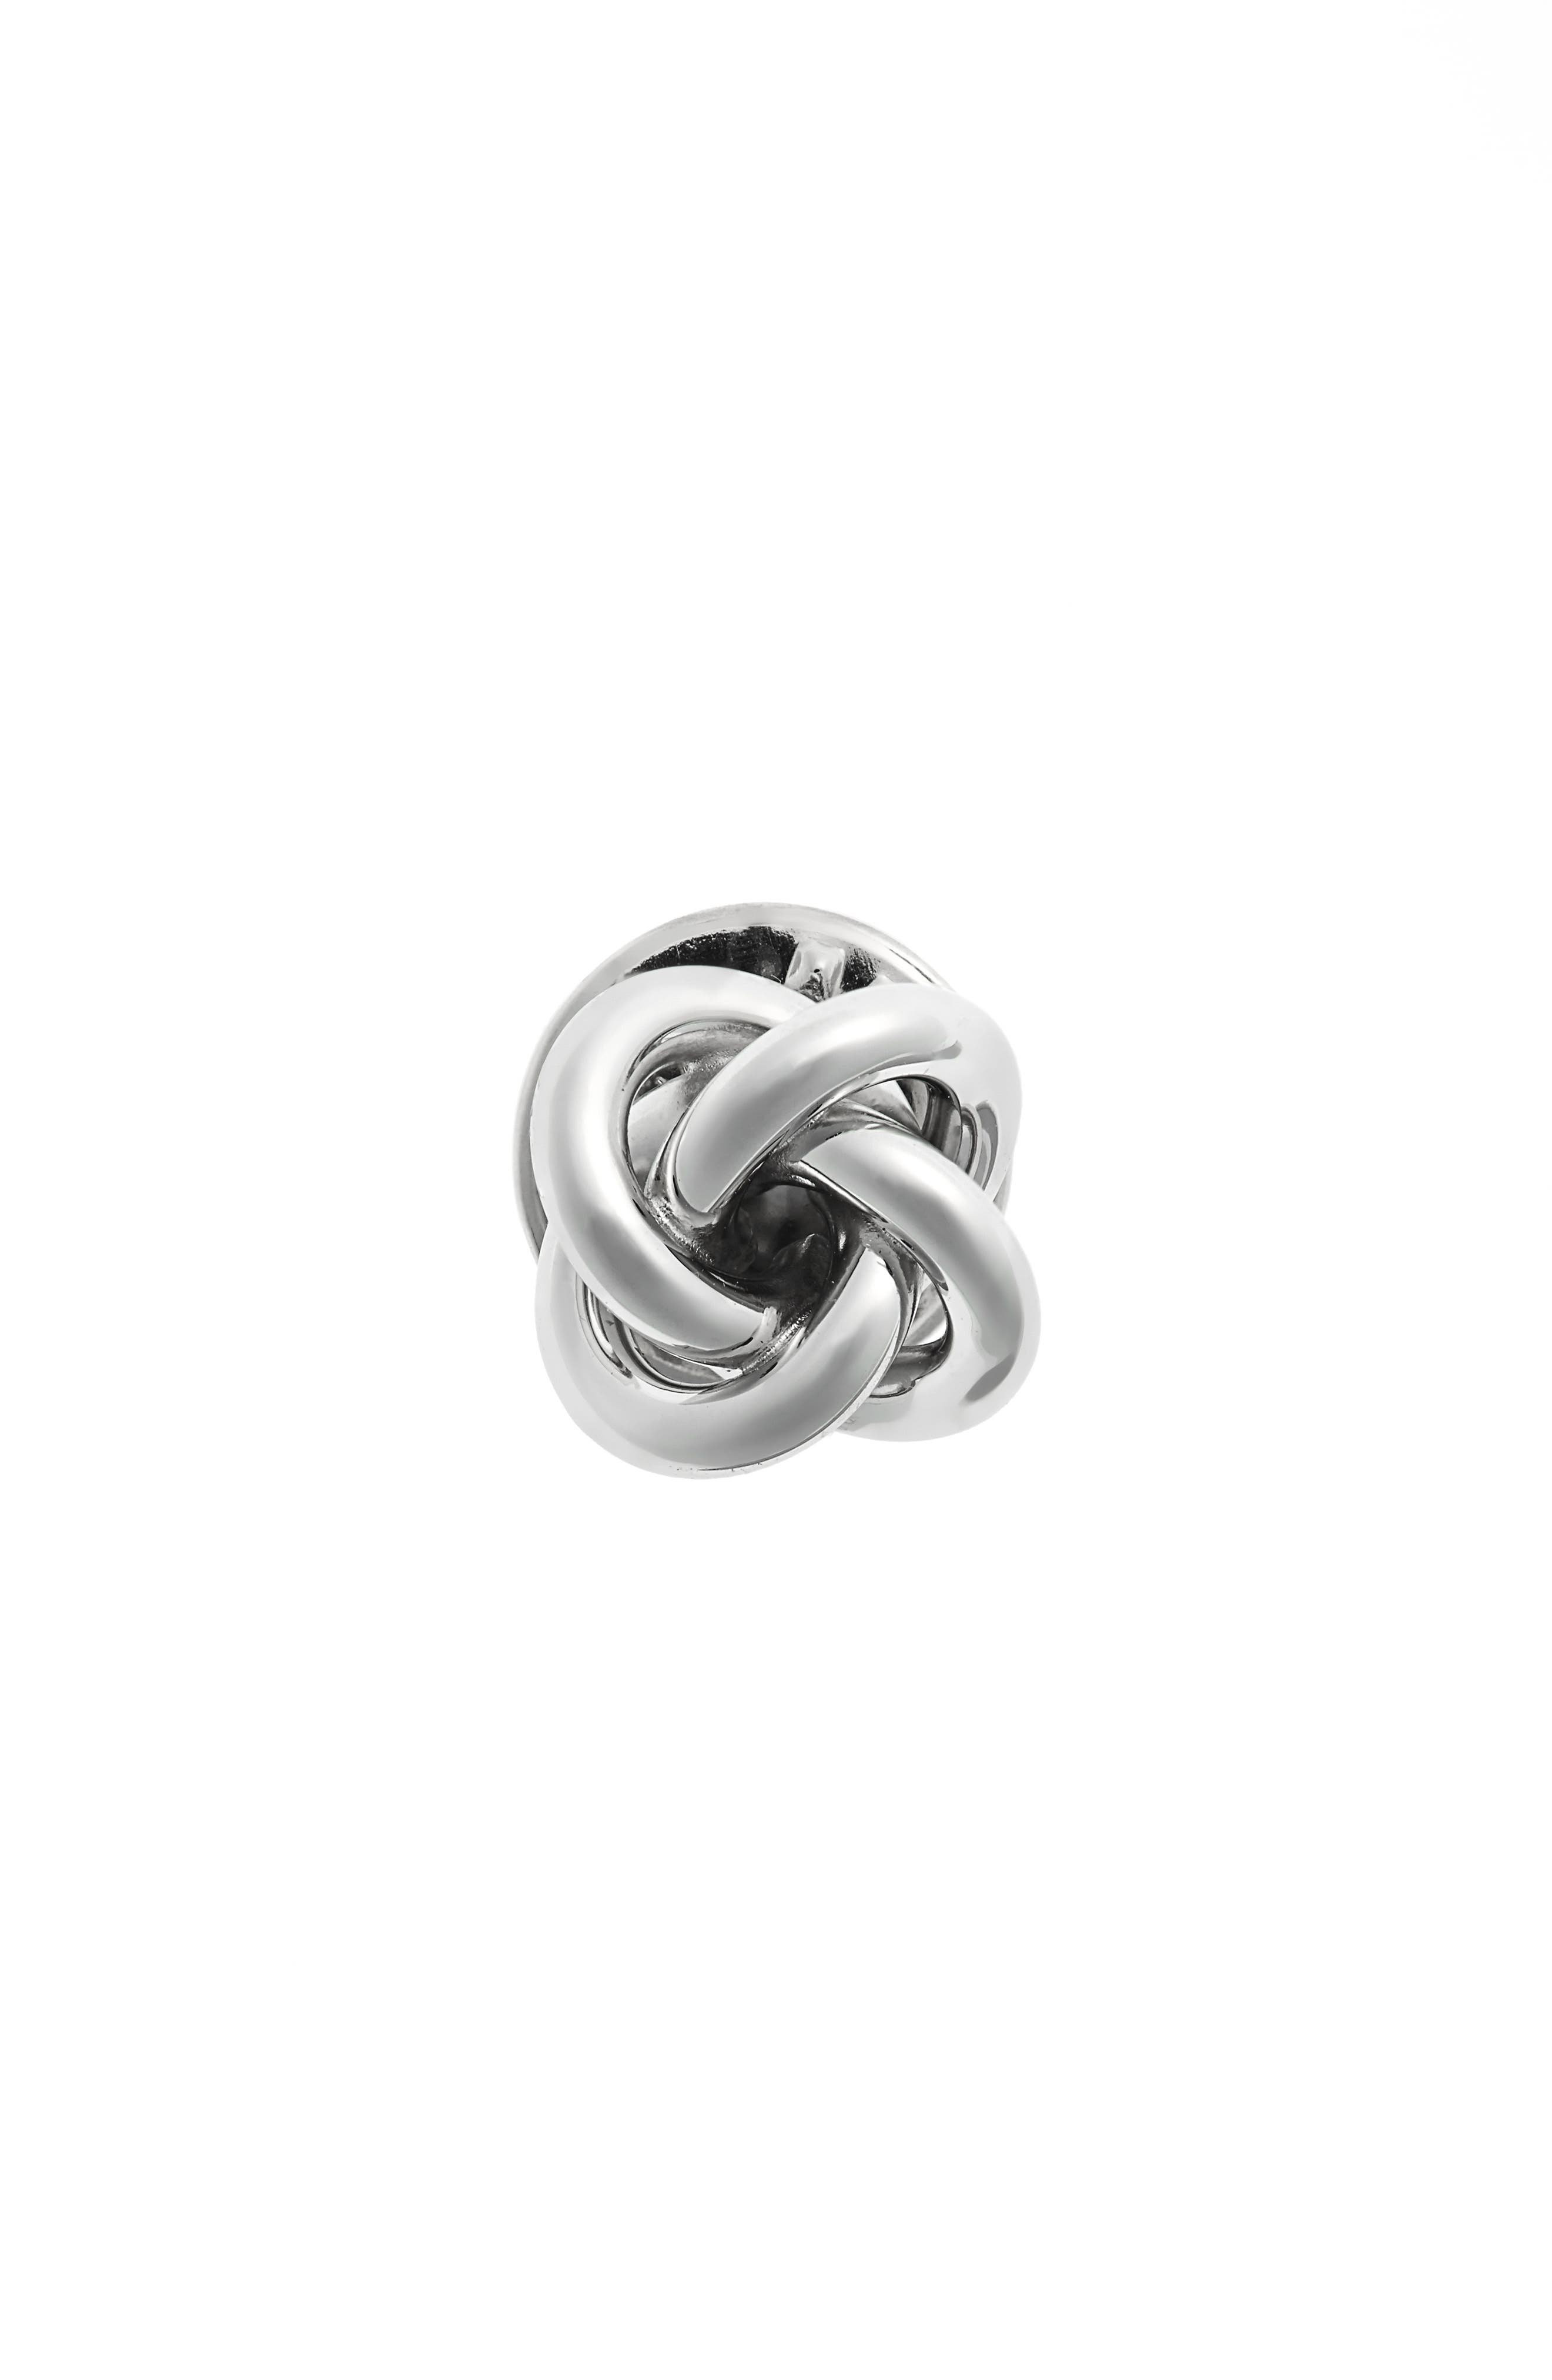 Knot Lapel Pin,                         Main,                         color, Silver